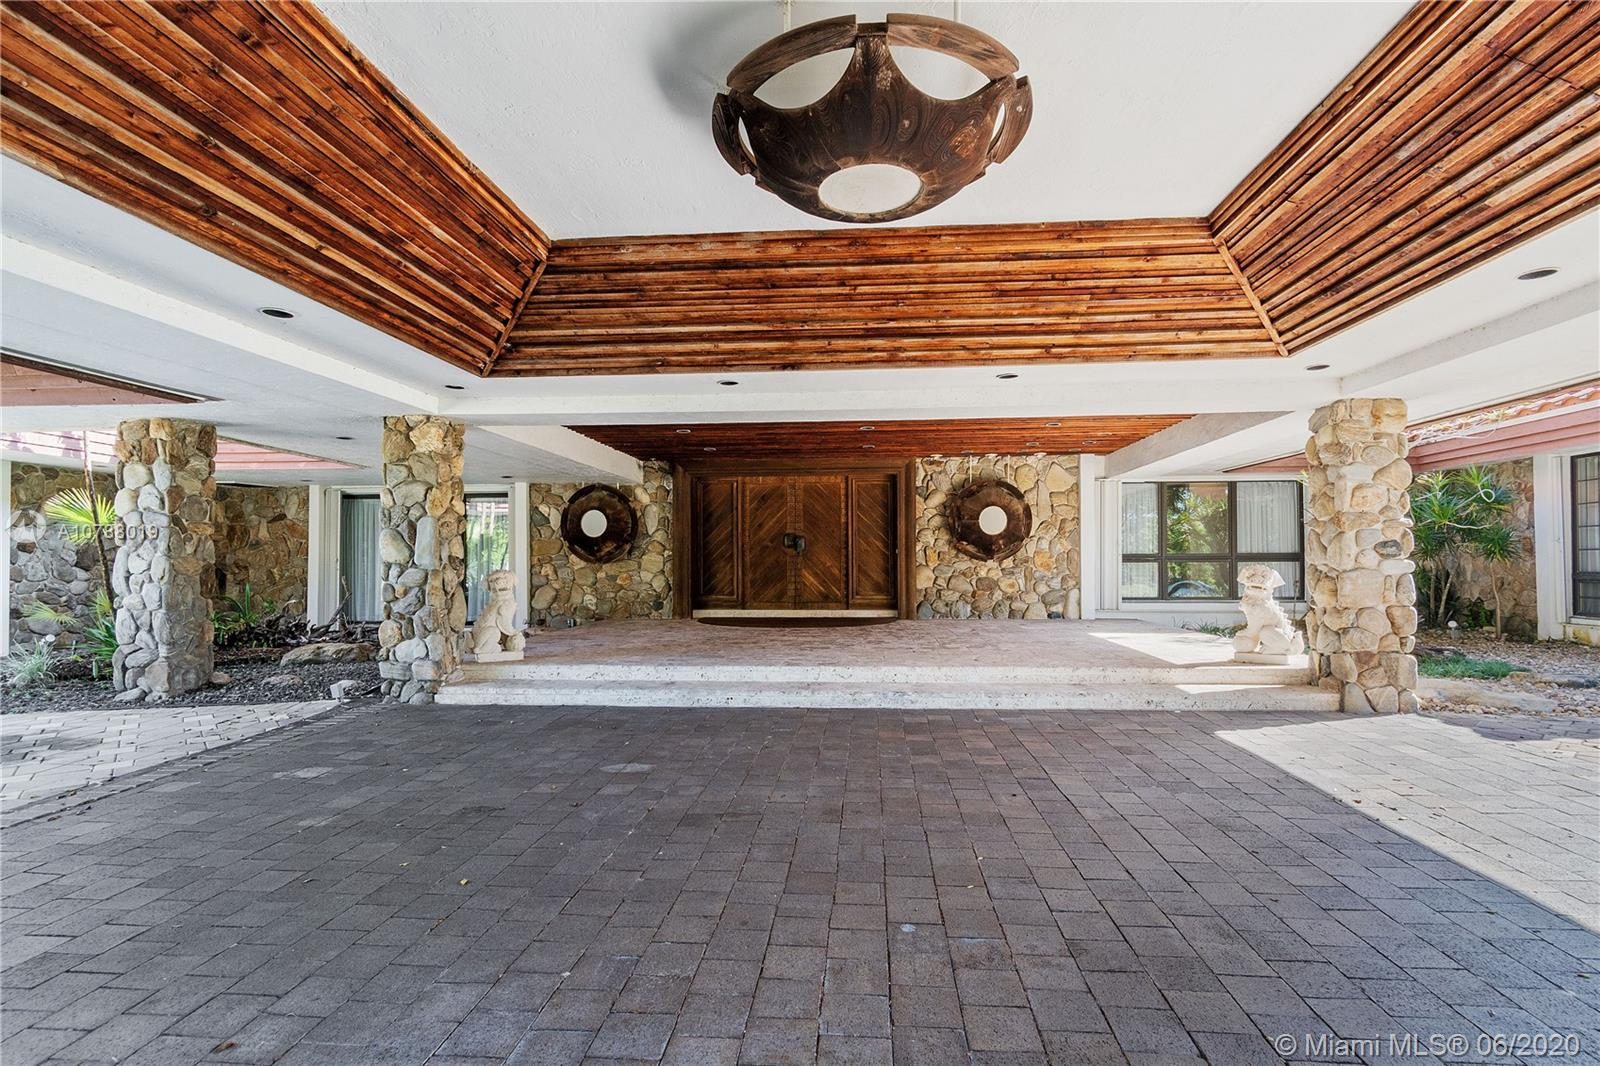 """This iconic Weston home affectionately nicknamed the """"House With The Horses"""" could be yours. This mansion sits on a large estate with a vast lake frontage and luscious vegetation. The centerpiece of the living room is a massive stone fireplace that culminates into a cowhide-covered ceiling. You truly feel like you are standing in an African Safari Lodge. The backyard has a pool, a large chess set, and a pair of gazebos. One gazebo has 2 bedrooms of its own, and a full bathroom, while the second gazebo has 1 bedroom, a full bathroom, and a kitchen. Unique to this Weston mansion is a walk-in safe that can be utilized as a safe room. The master bedroom's walk-in closets are lined with Cedarwood. The driveway leads you to the magnificent wooden entrance of the mansion or to a 3 car garage."""